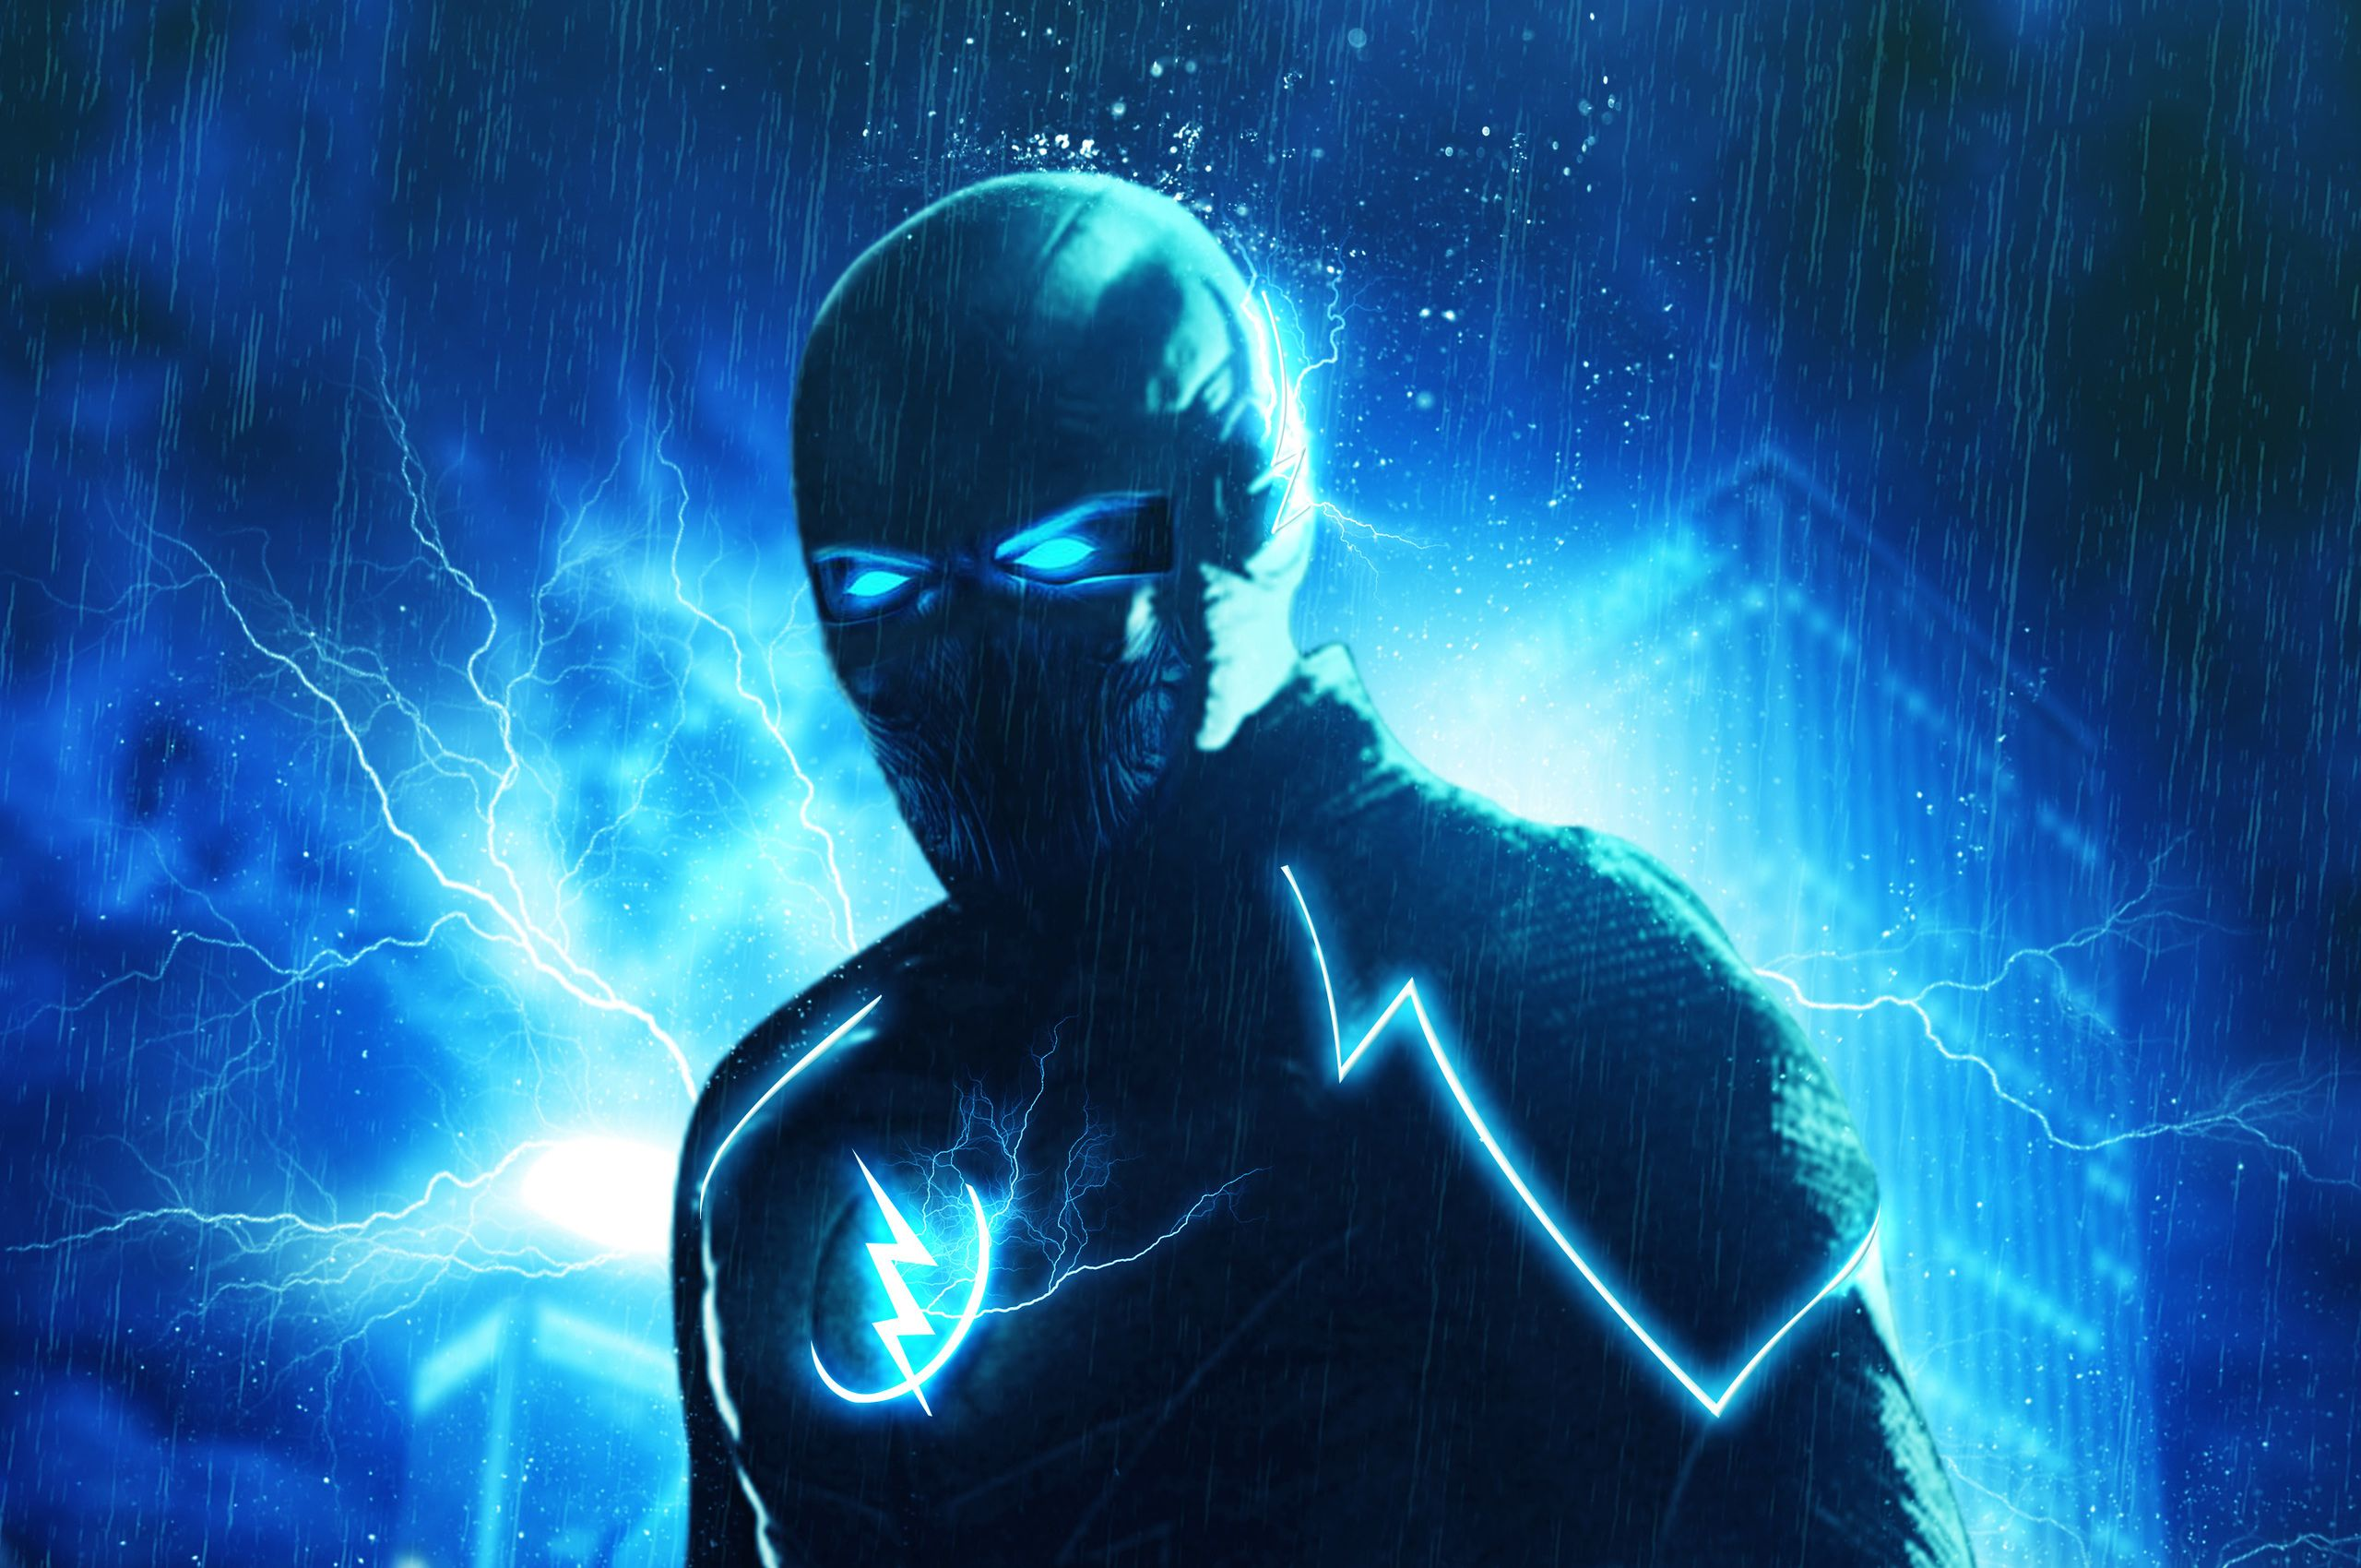 Cool Wallpaper Chromebook Mywallpapers Site Flash Wallpaper Flash Comics Flash Dc Comics